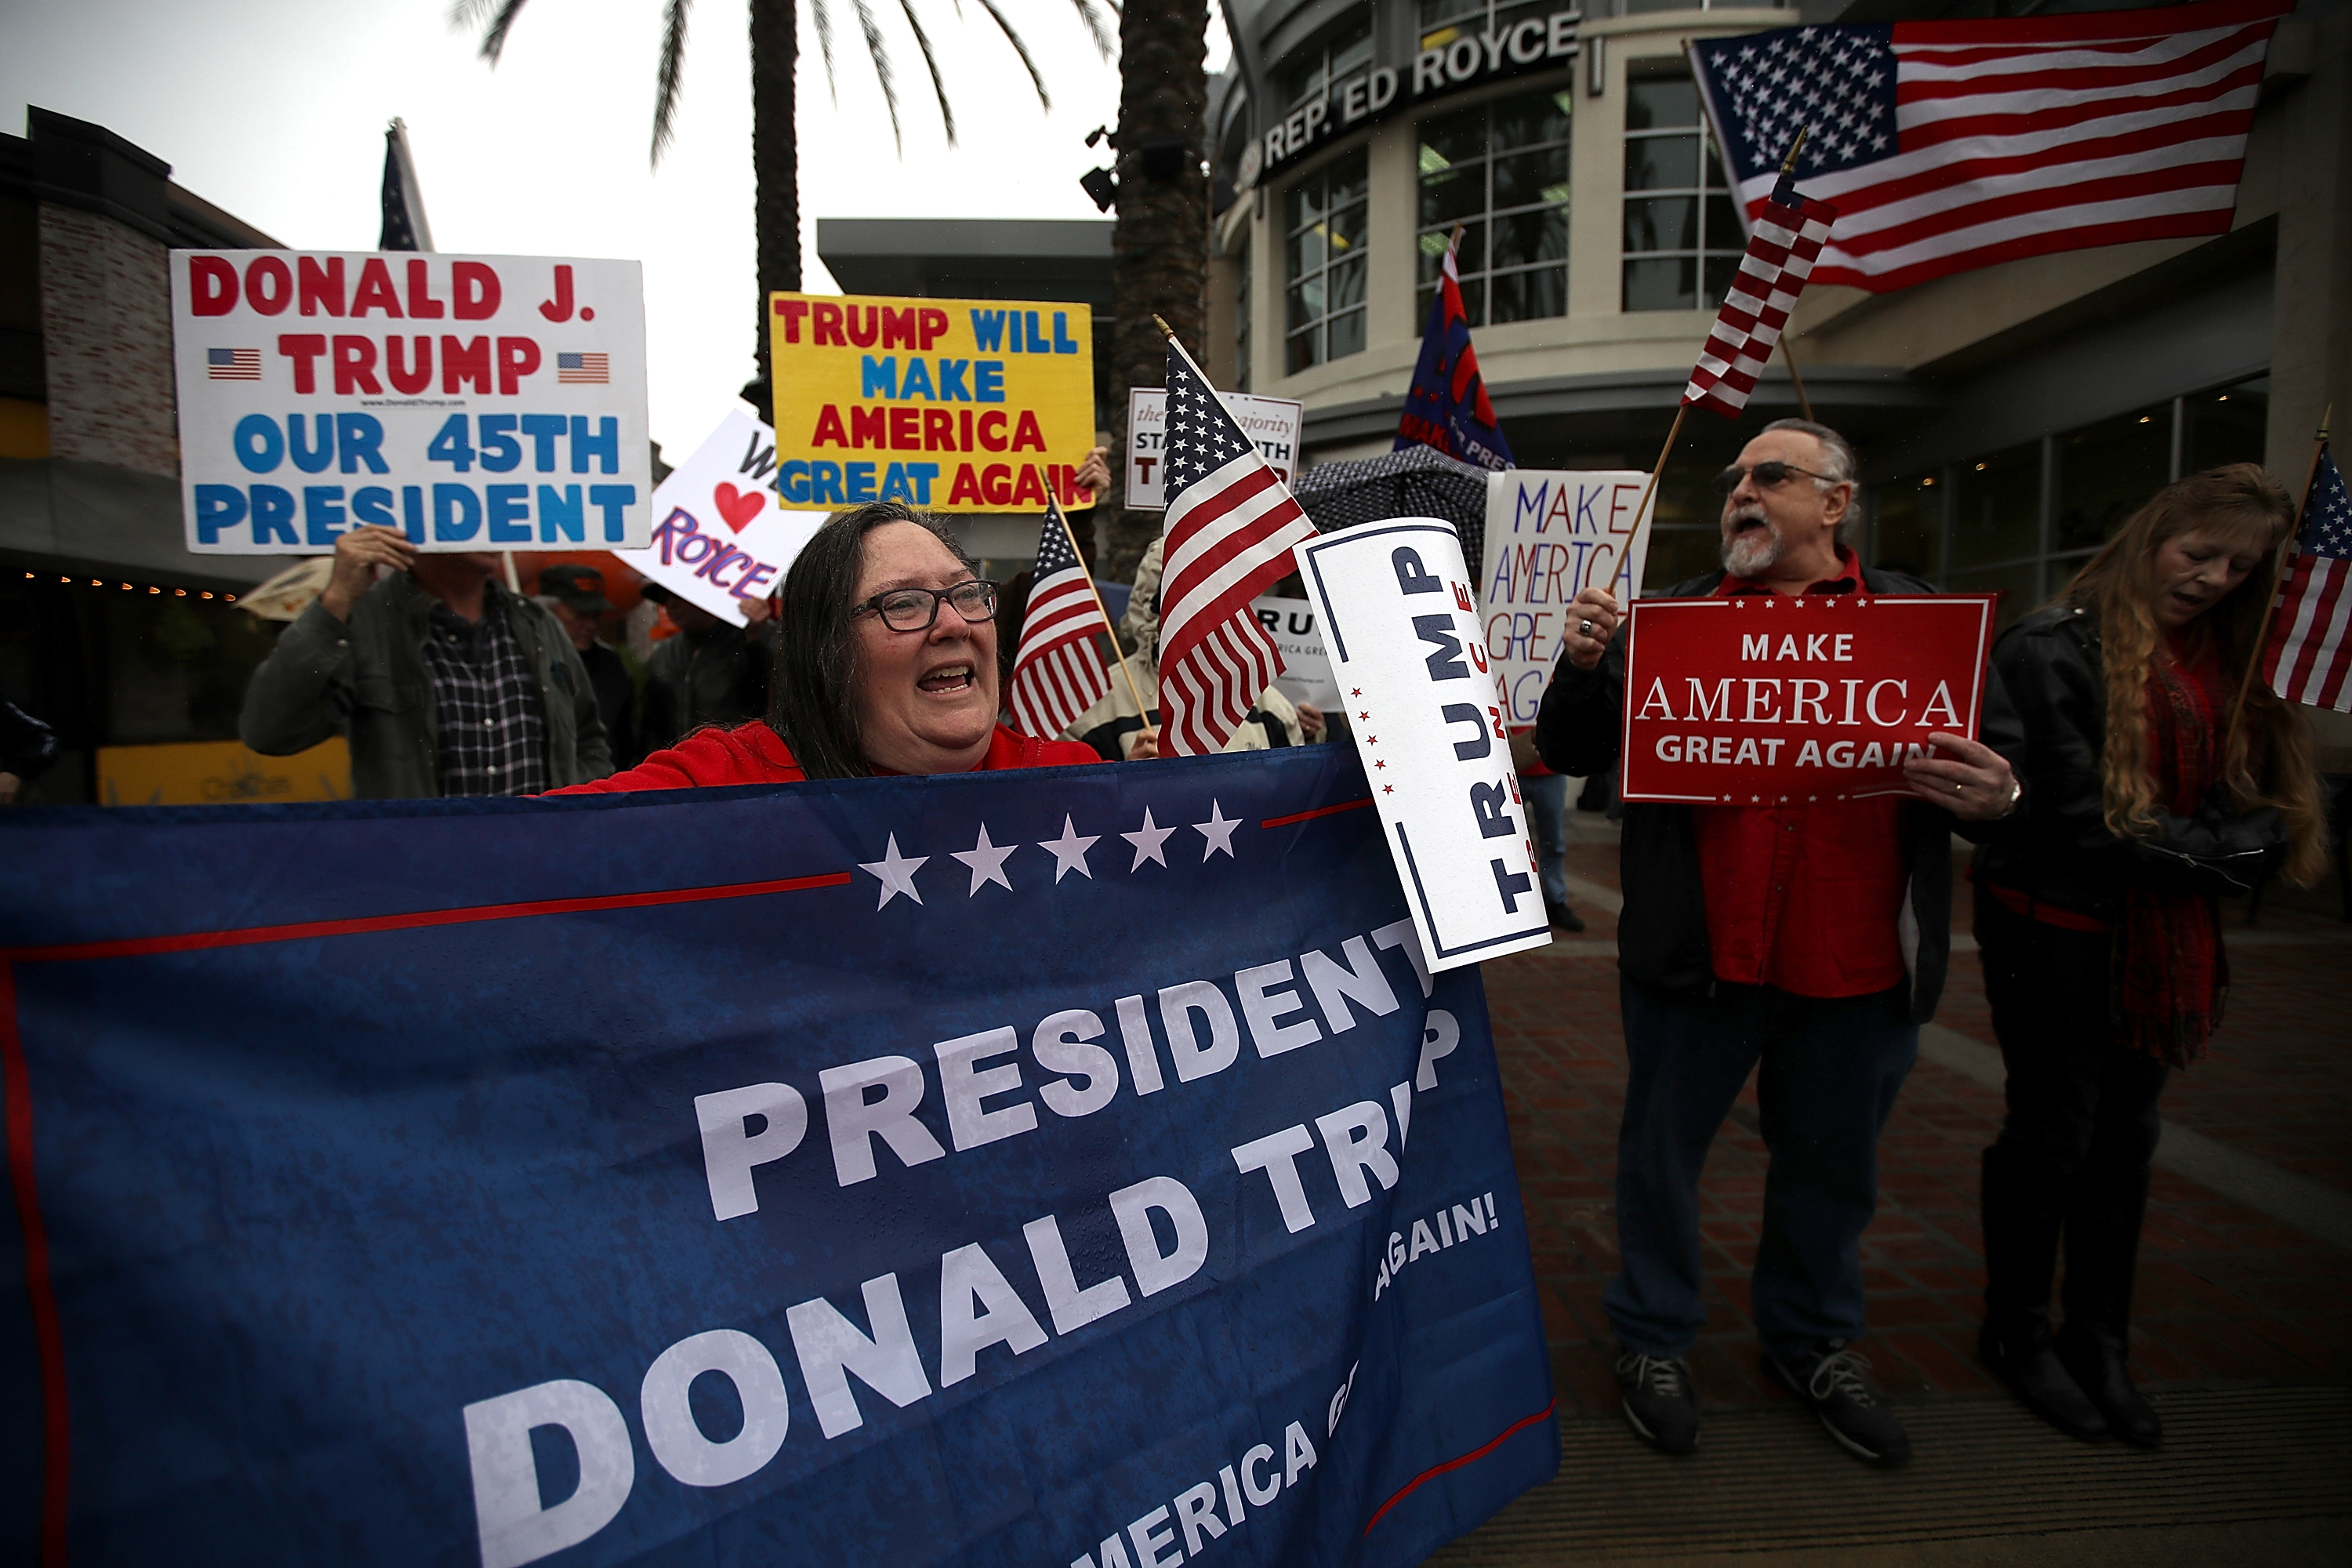 Supporters of U.S. President Donald Trump hold signs during a rally in favor of the  America First  agenda on February 27, 2017 in Brea, California.